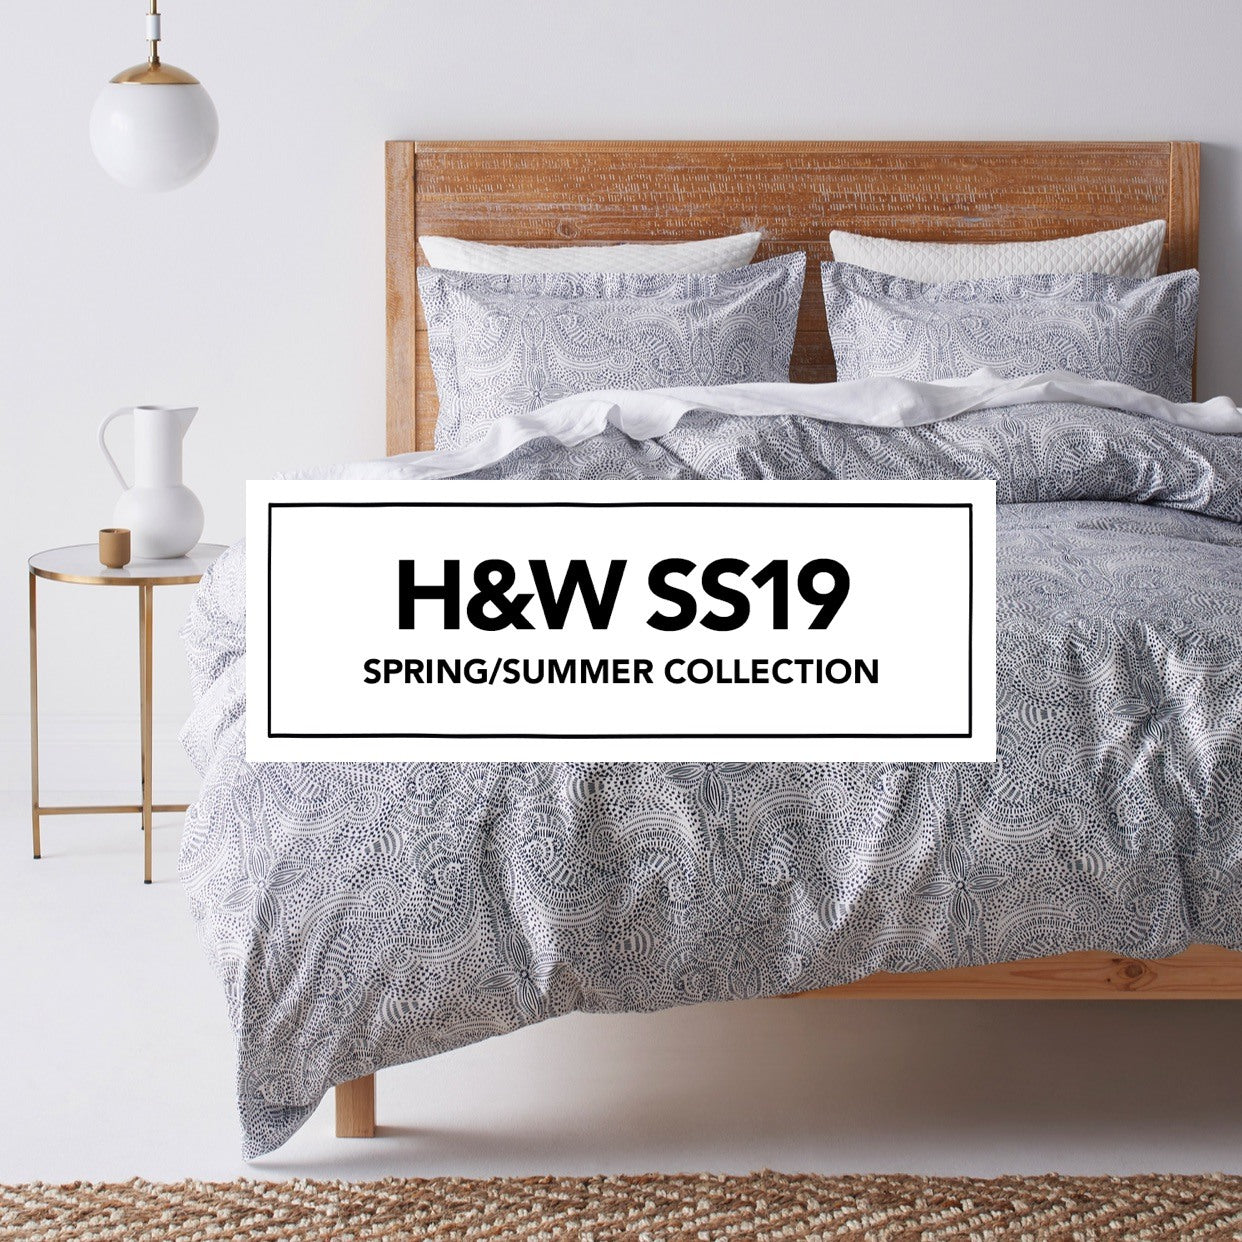 files/ss19_bedding_lp_hero_m_3x_dd5cd6be-50b3-4b31-81e7-f141cef9355c.jpg